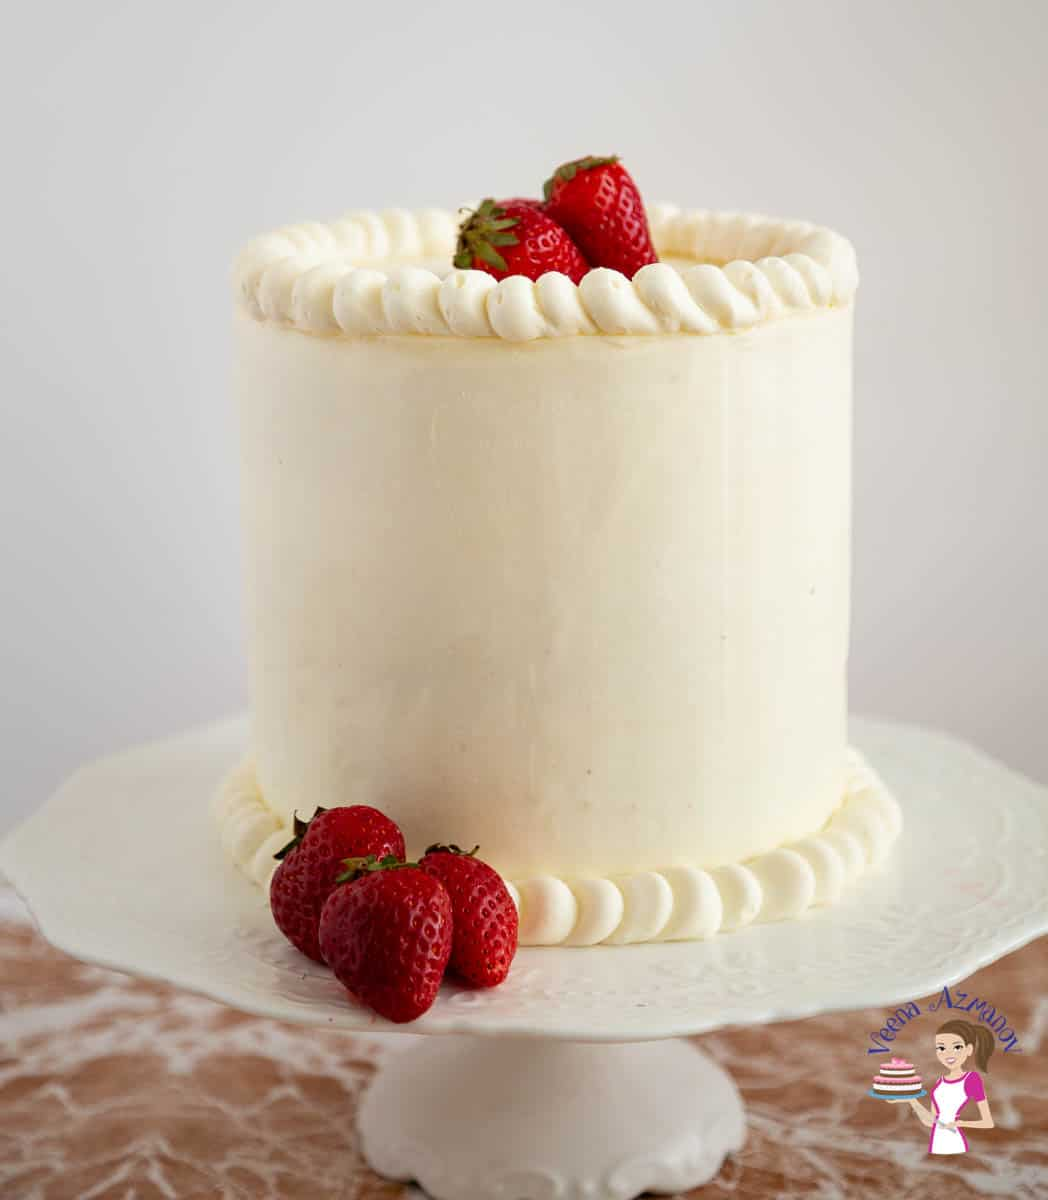 A frosted strawberry cake with fresh strawberries